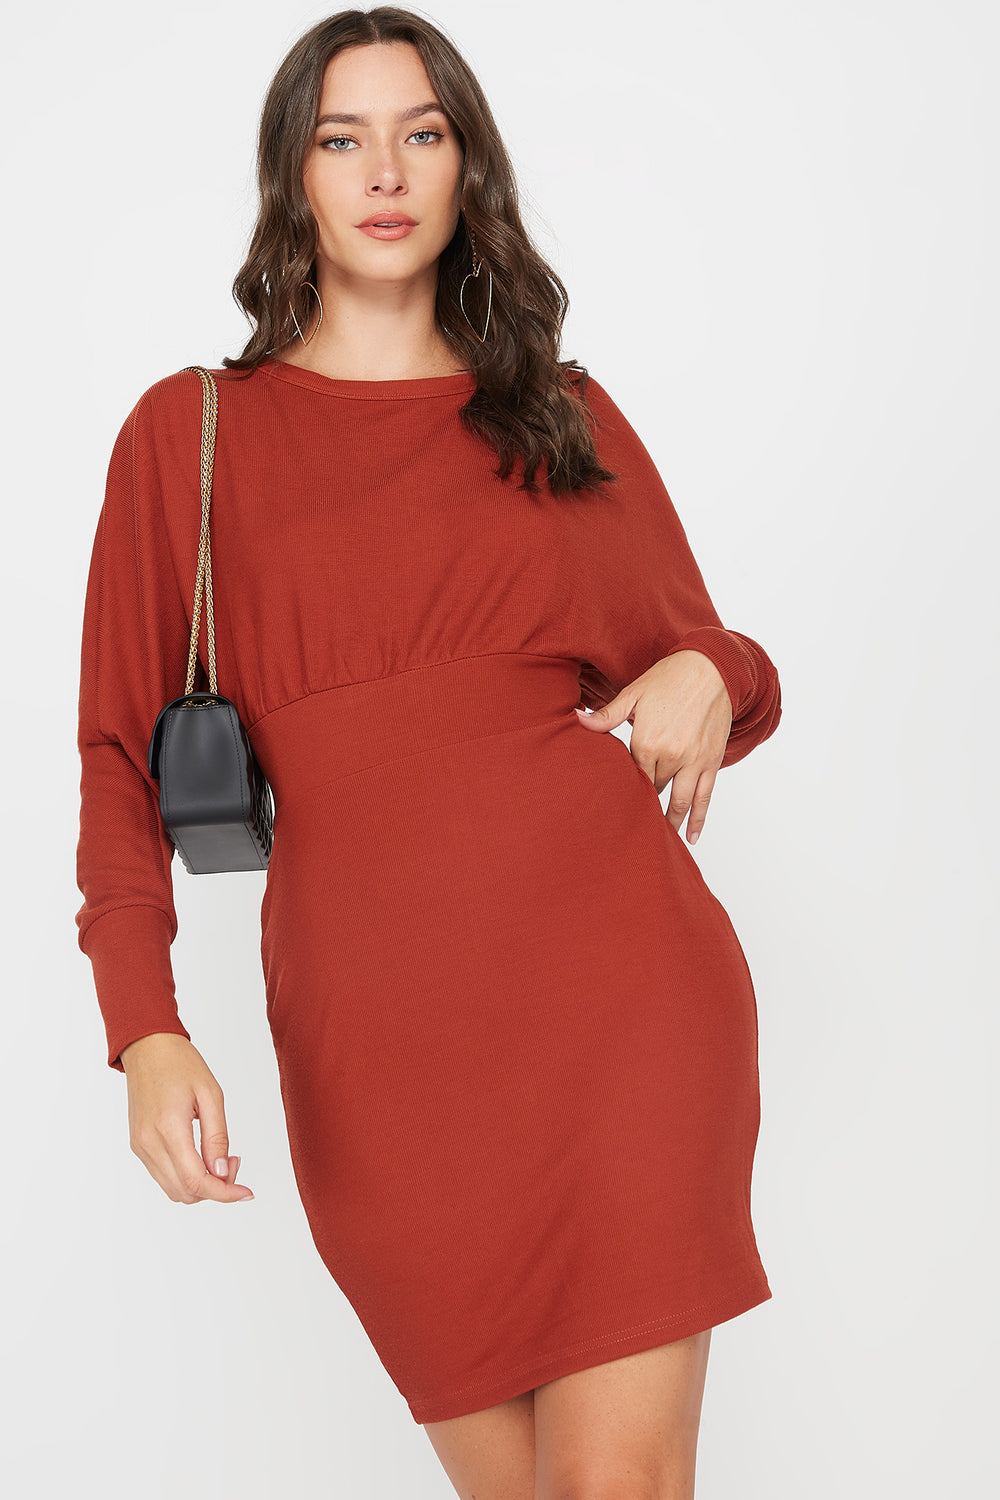 Scoop Neck Self Tie Dolman Long Sleeve Dress Rust